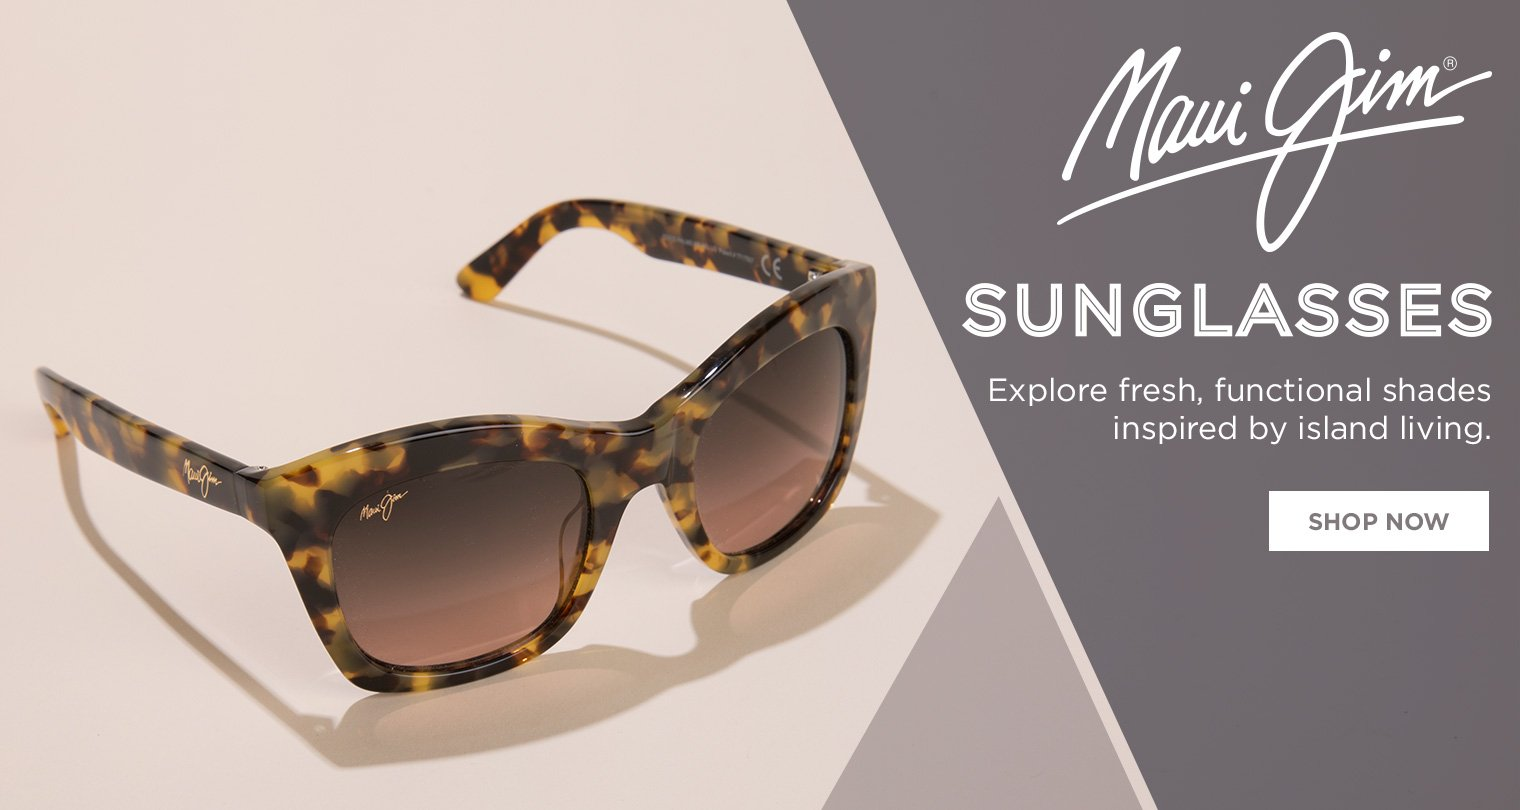 Maui Jim Sunglasses. Explore fresh, functional shades inspired by island living.